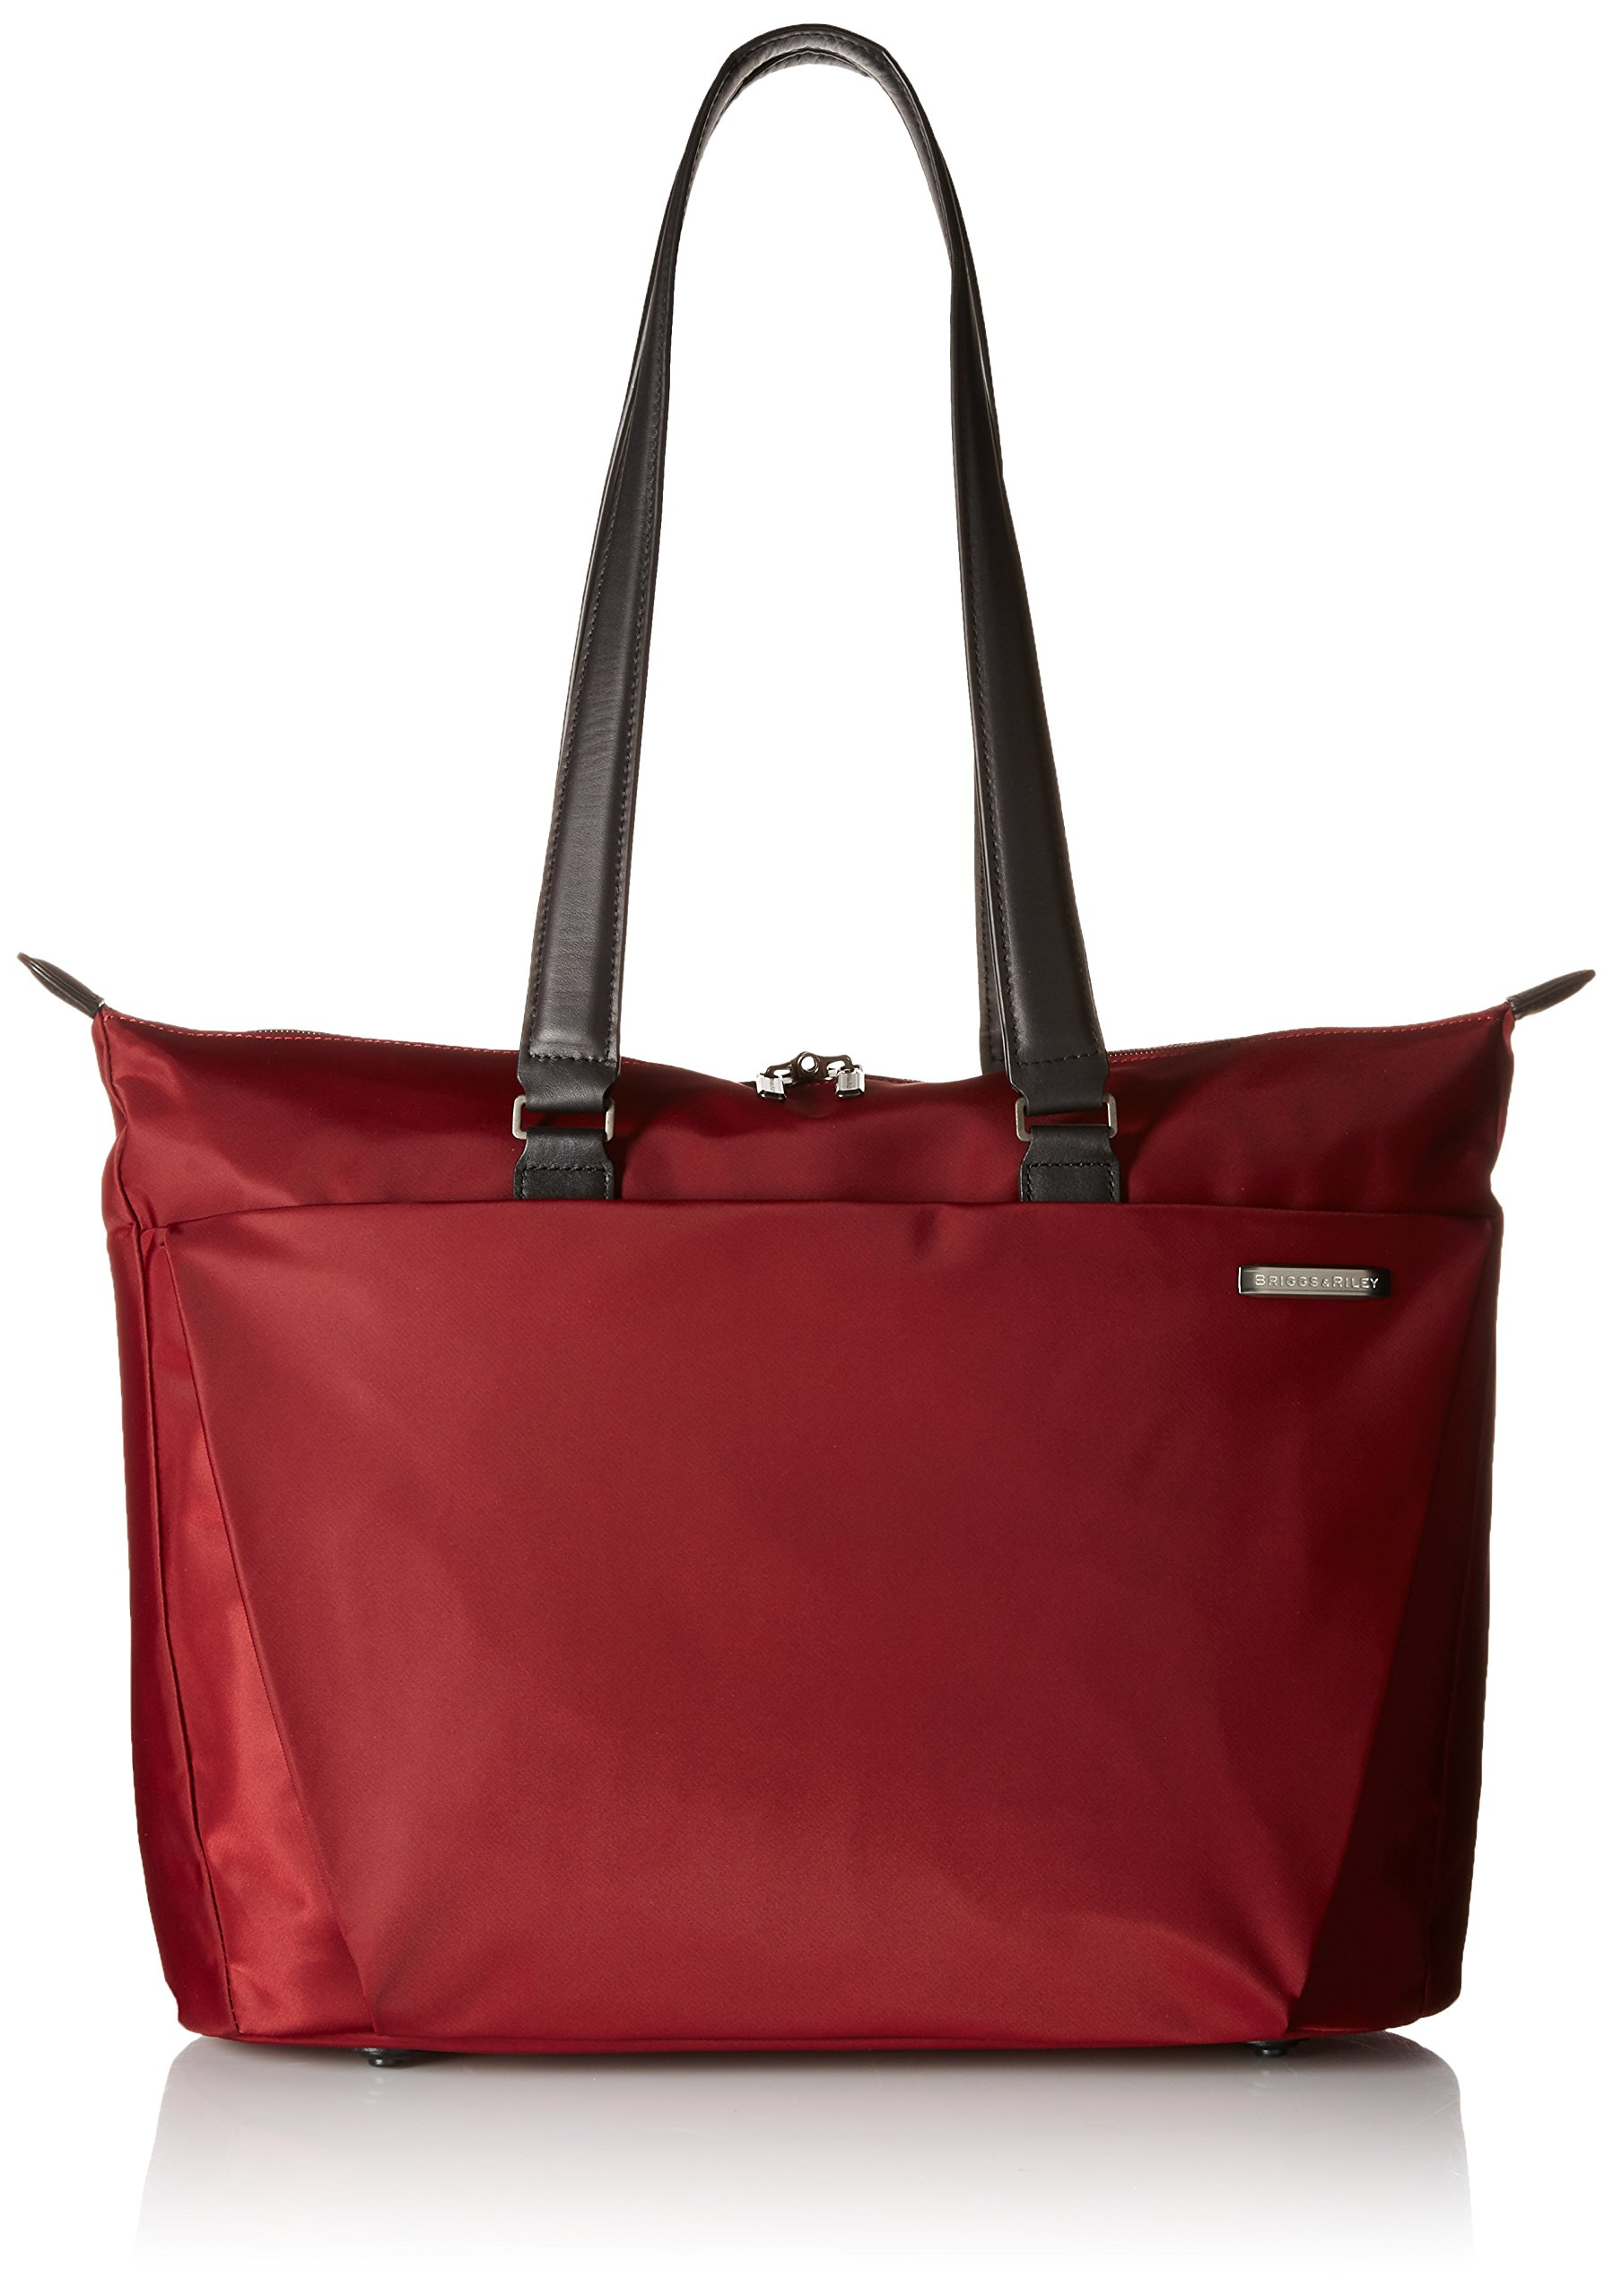 Briggs & Riley Sympatico Shopping Tote, Burgundy